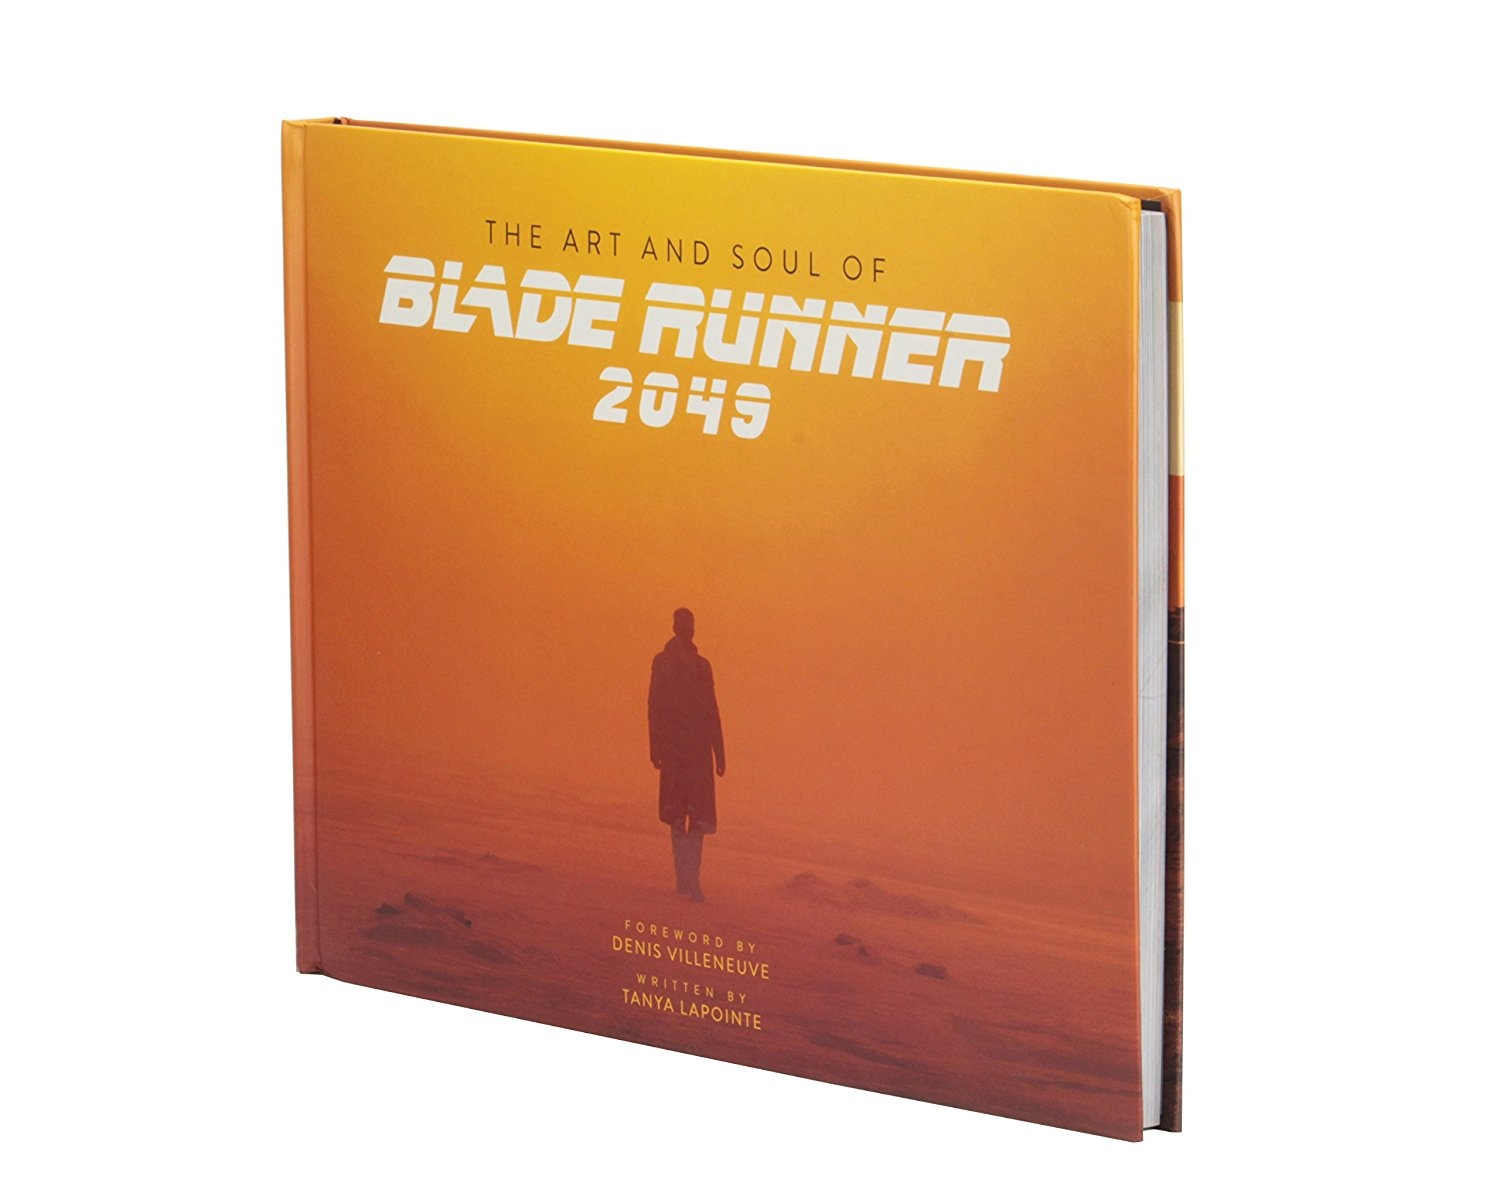 The Art and Soul of Blade Runner 2049 by Tanya Lapointe, ISBN: 9781629399089